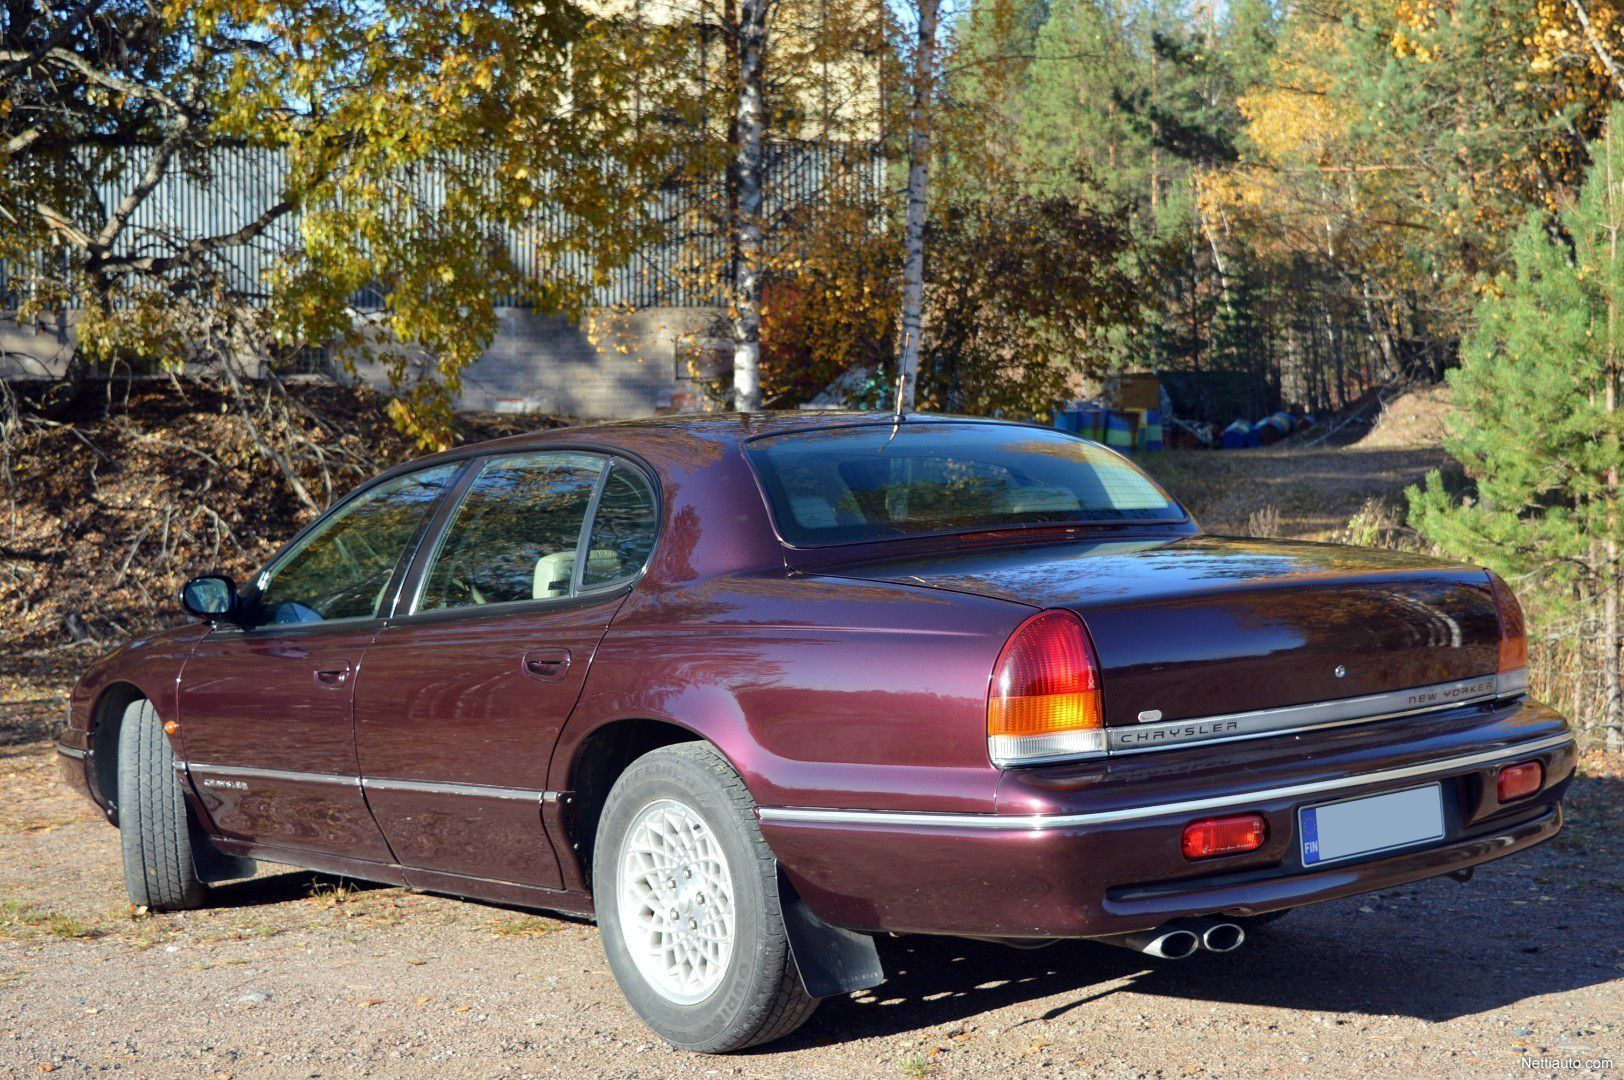 1996 Chrysler New Yorker With Images Classic Cars Chrysler